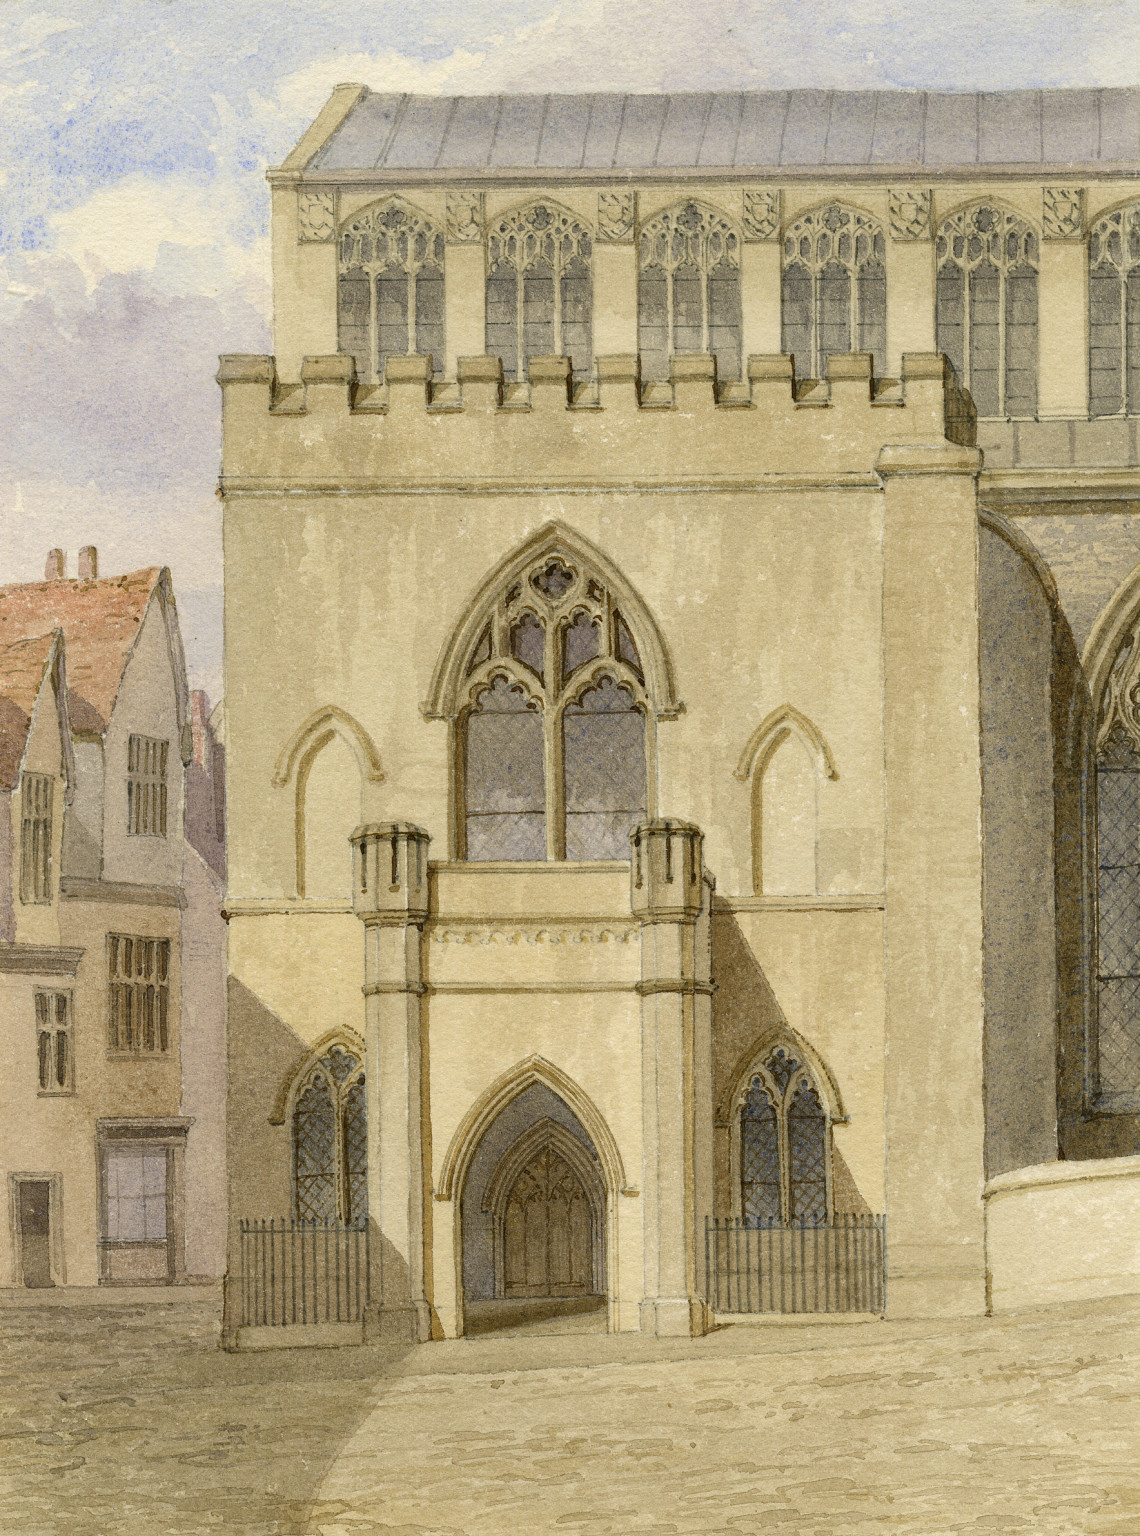 Drawing of 'St. Andrew's Hall Porch' by Henry Ninham (1793-1874) where Benson lectured